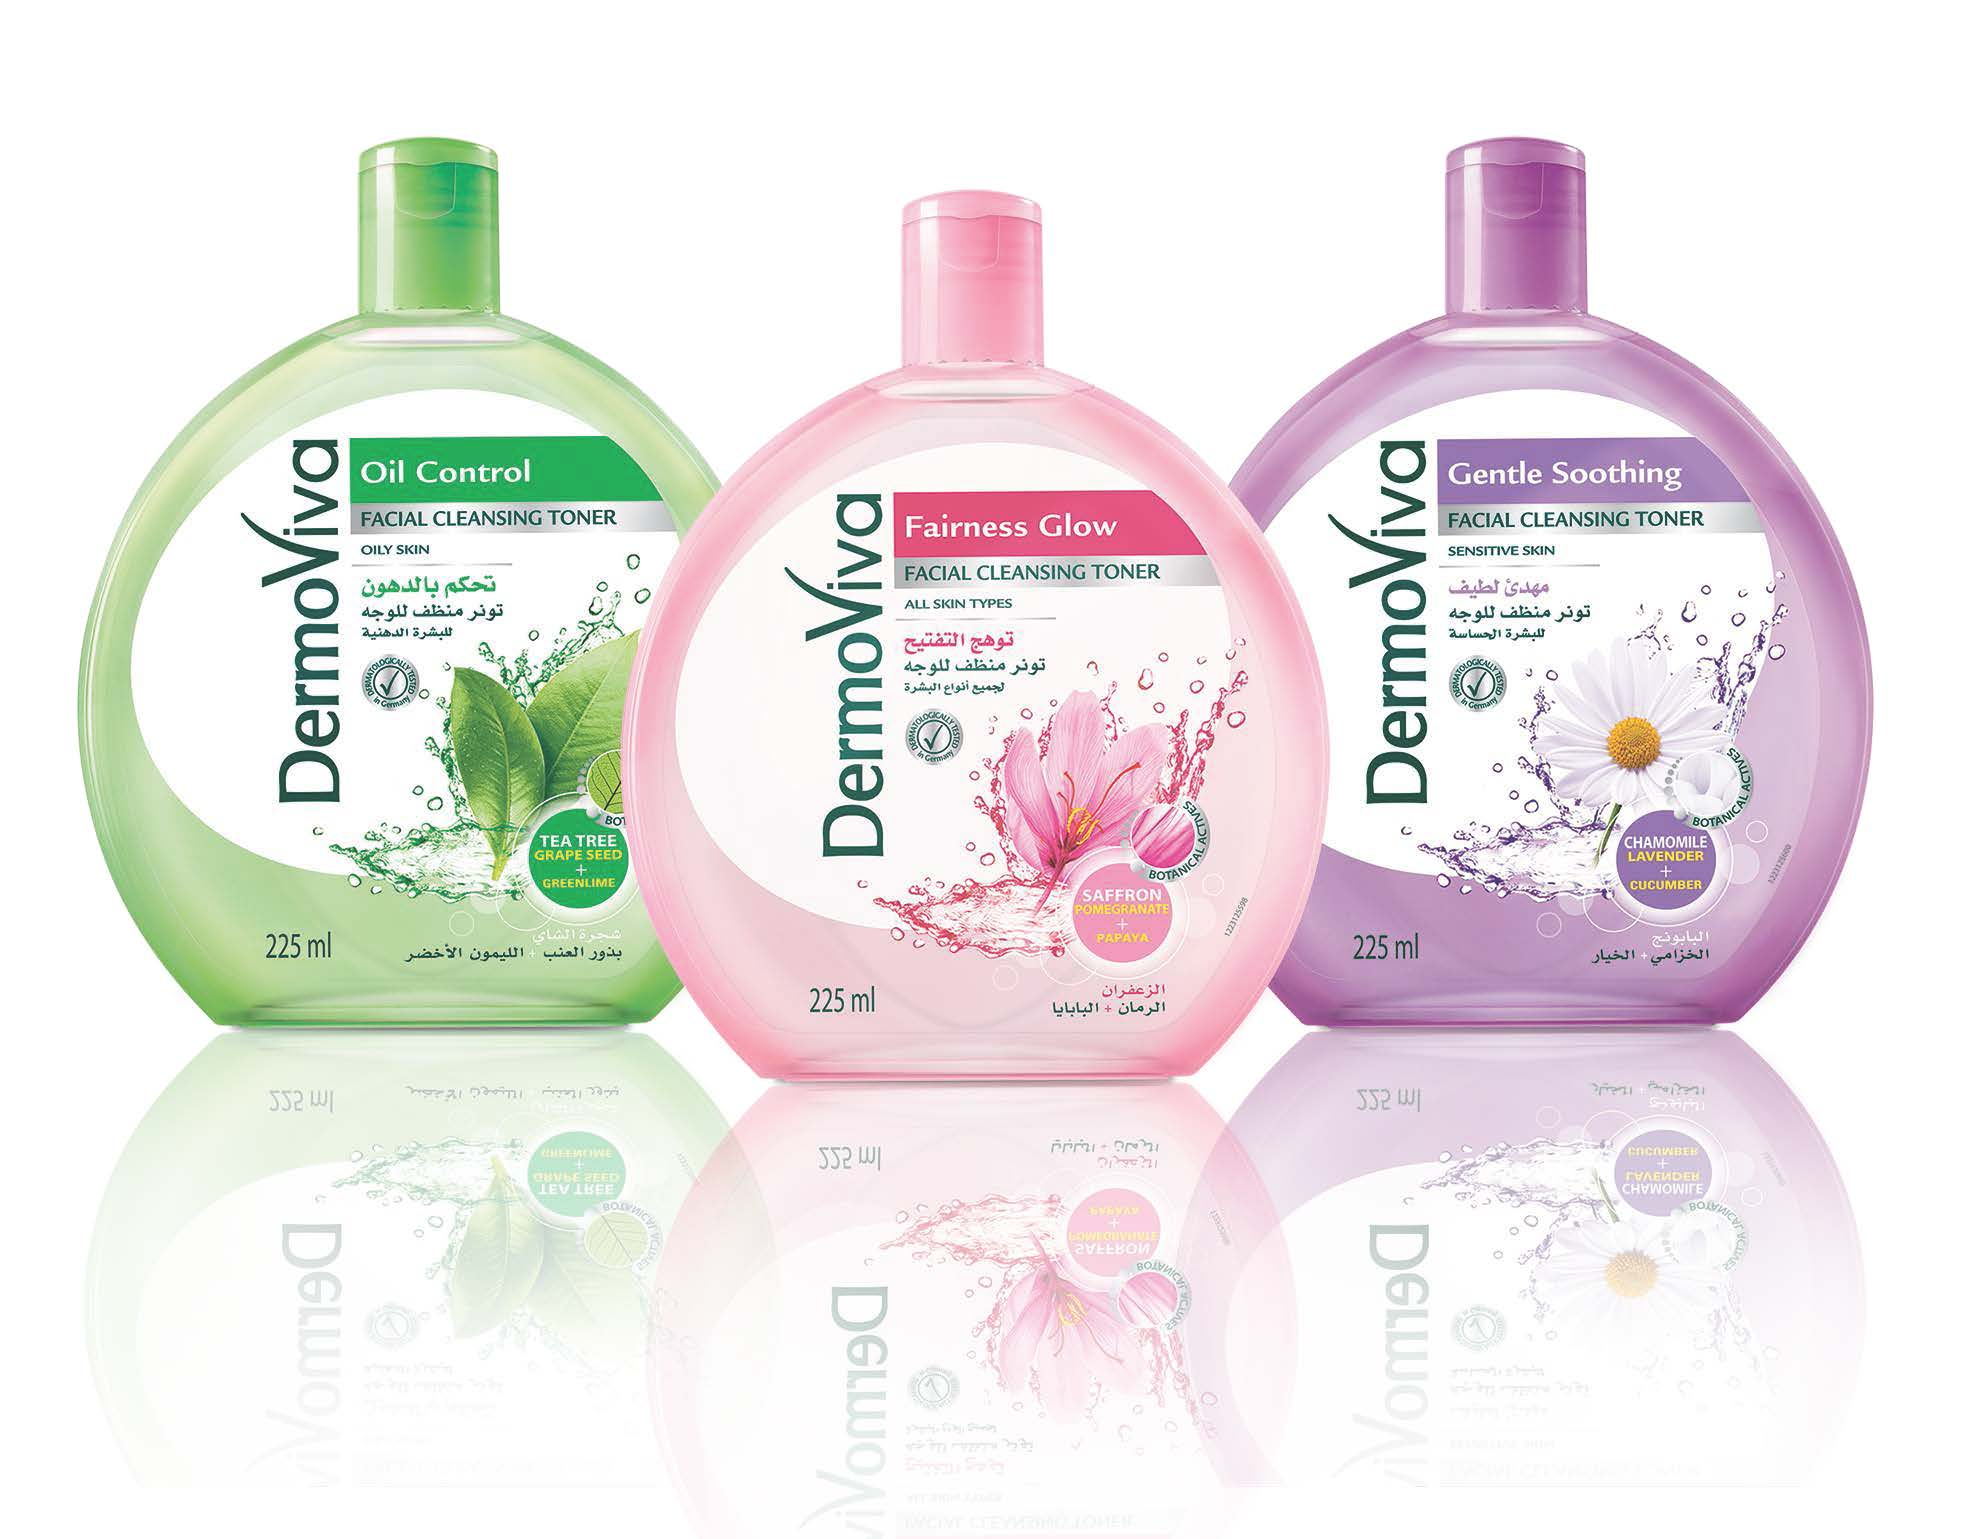 Product Placement – DermoViva Facial Cleansing Toner